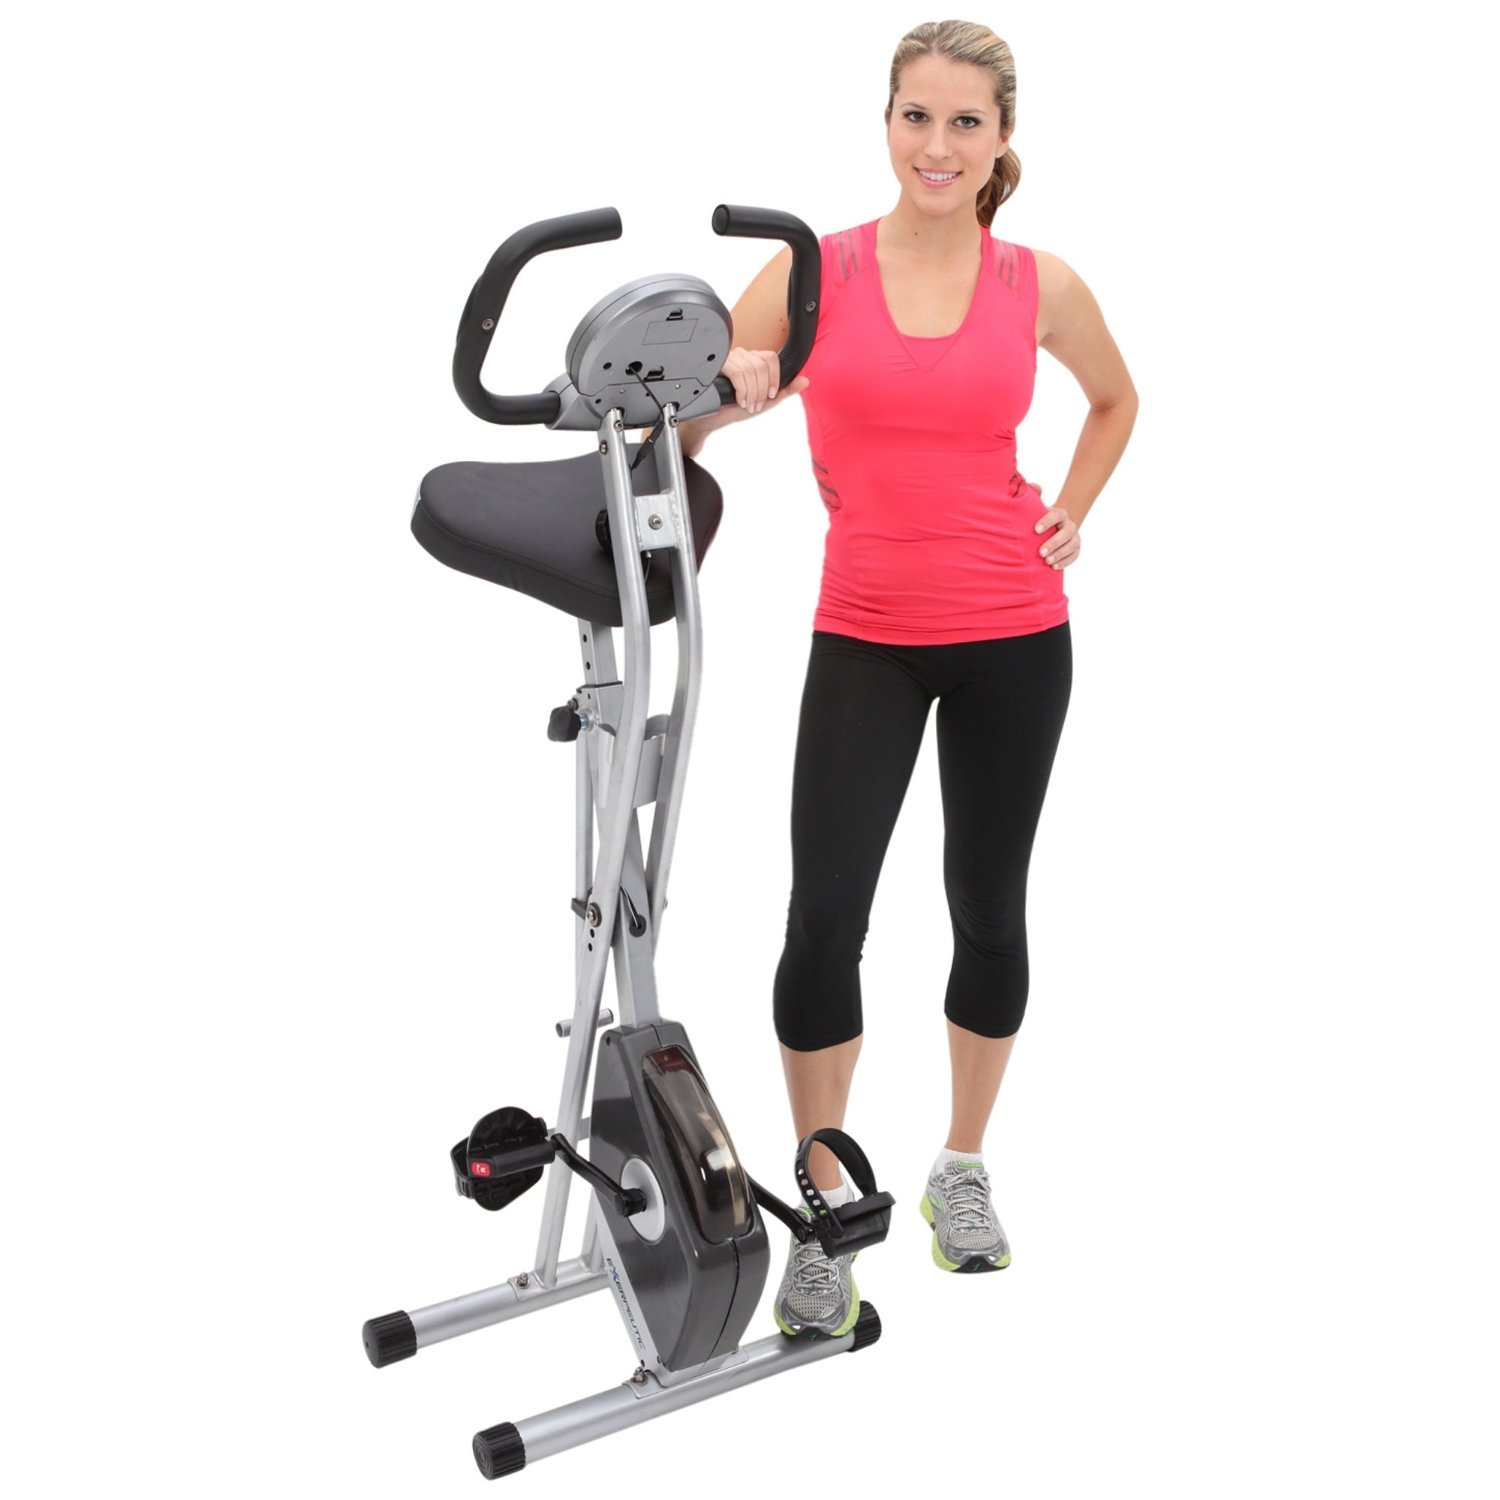 Exerpeutic Folding Magnetic Upright Exercise Bike Black Friday Deal